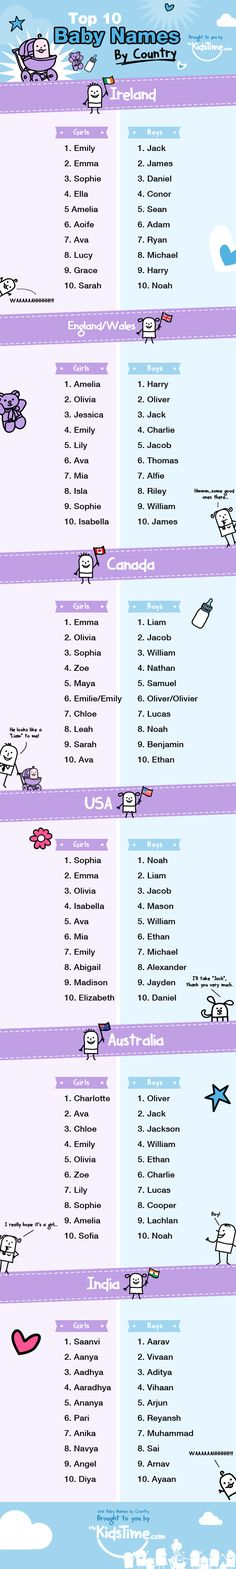 So what were the most popular baby names last year? Check our fun baby names by country infographic to find out!